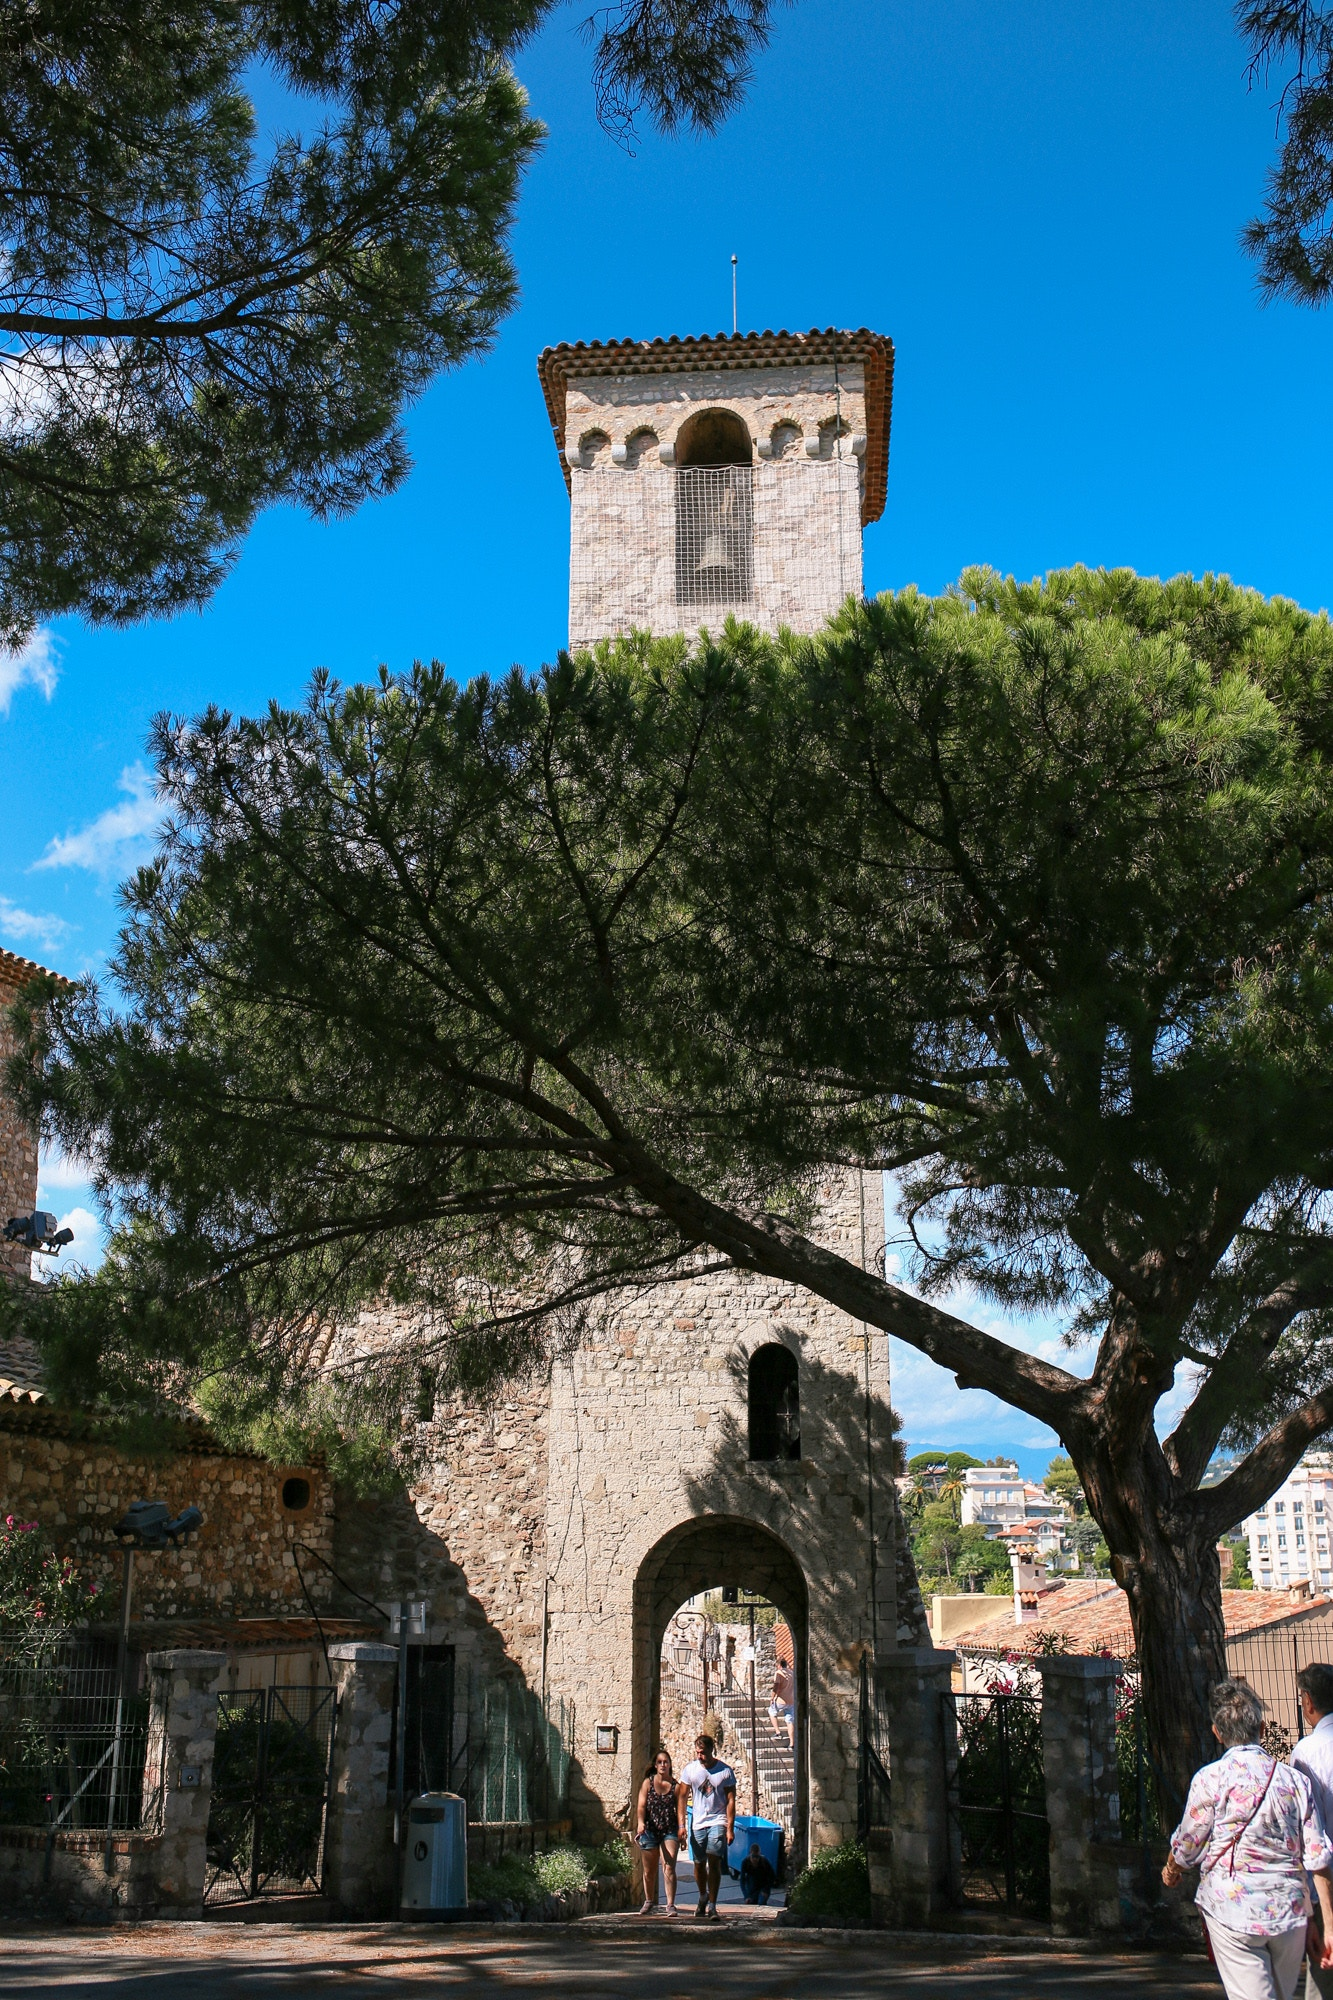 Clocktower in Le Suquet, Cannes